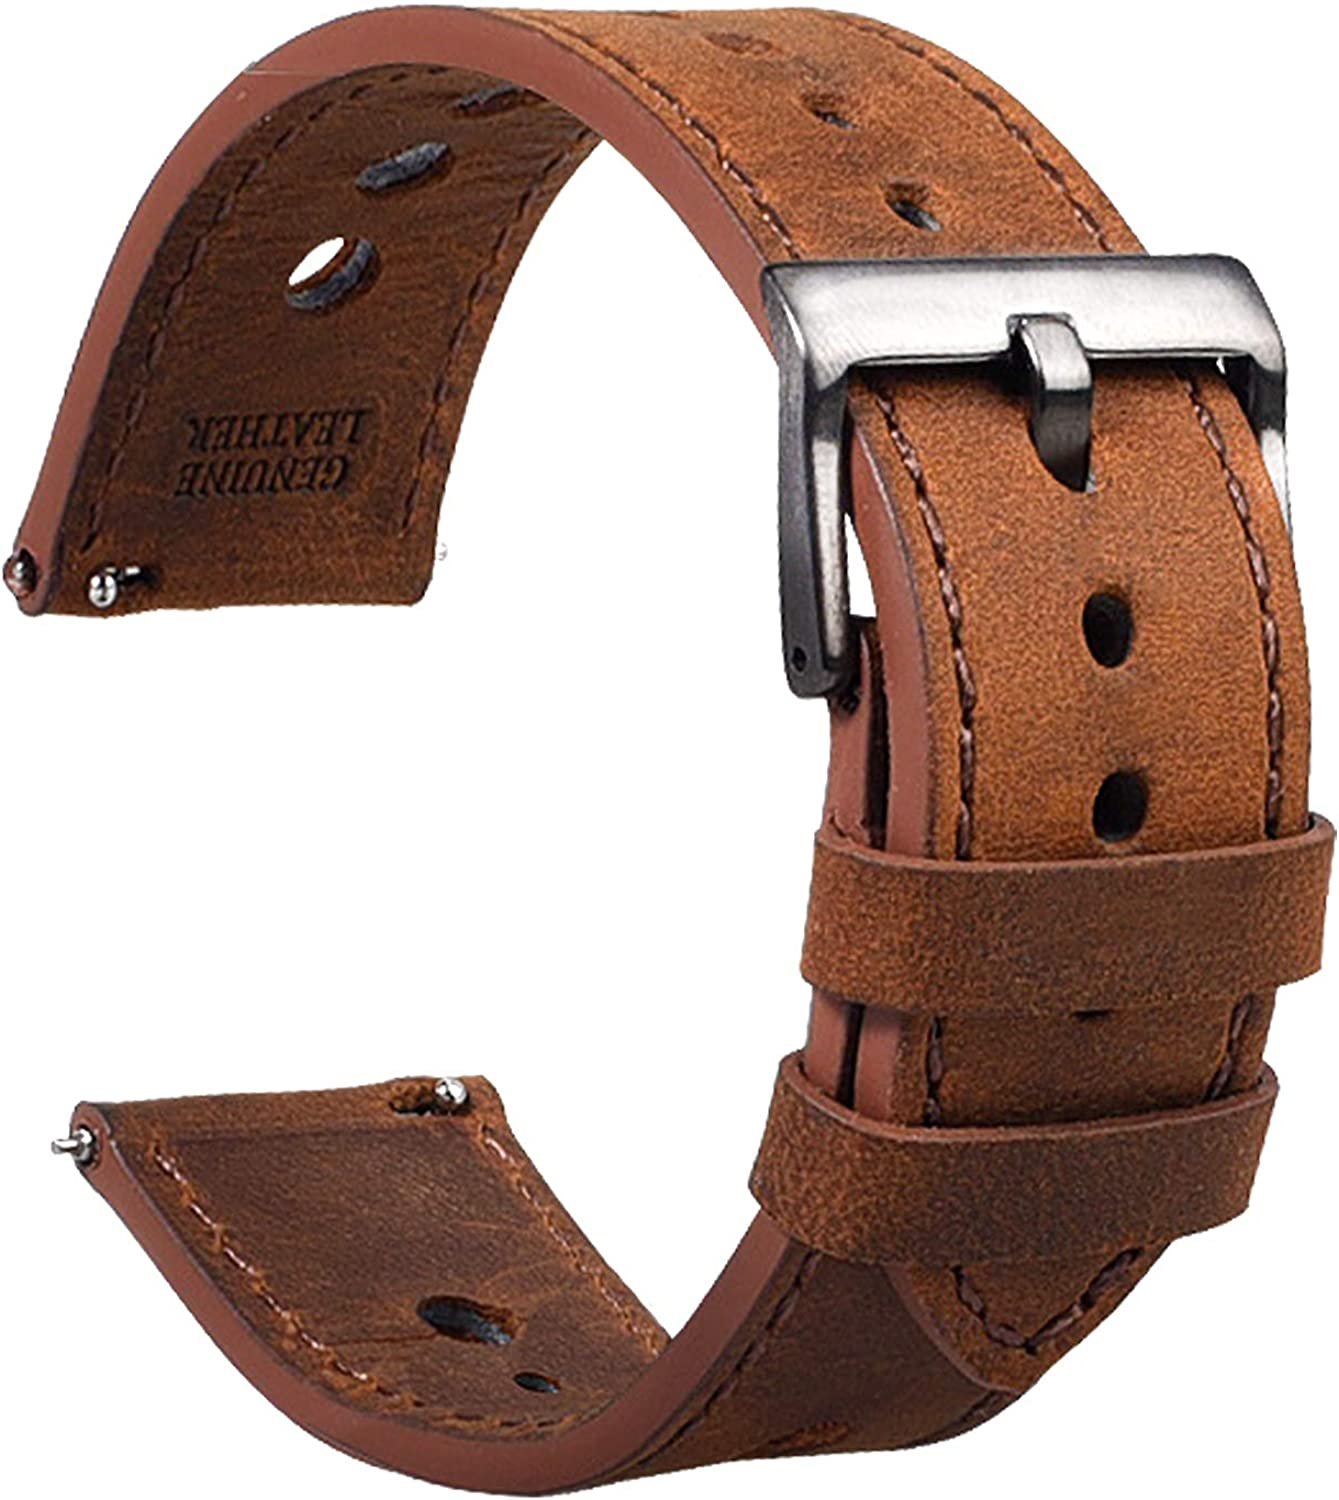 Cauwsai Leather Watch Band - Quick Release Double-Sided Leather Watch Strap - 18mm, 20mm, 22mm, 24mm - 8 Color